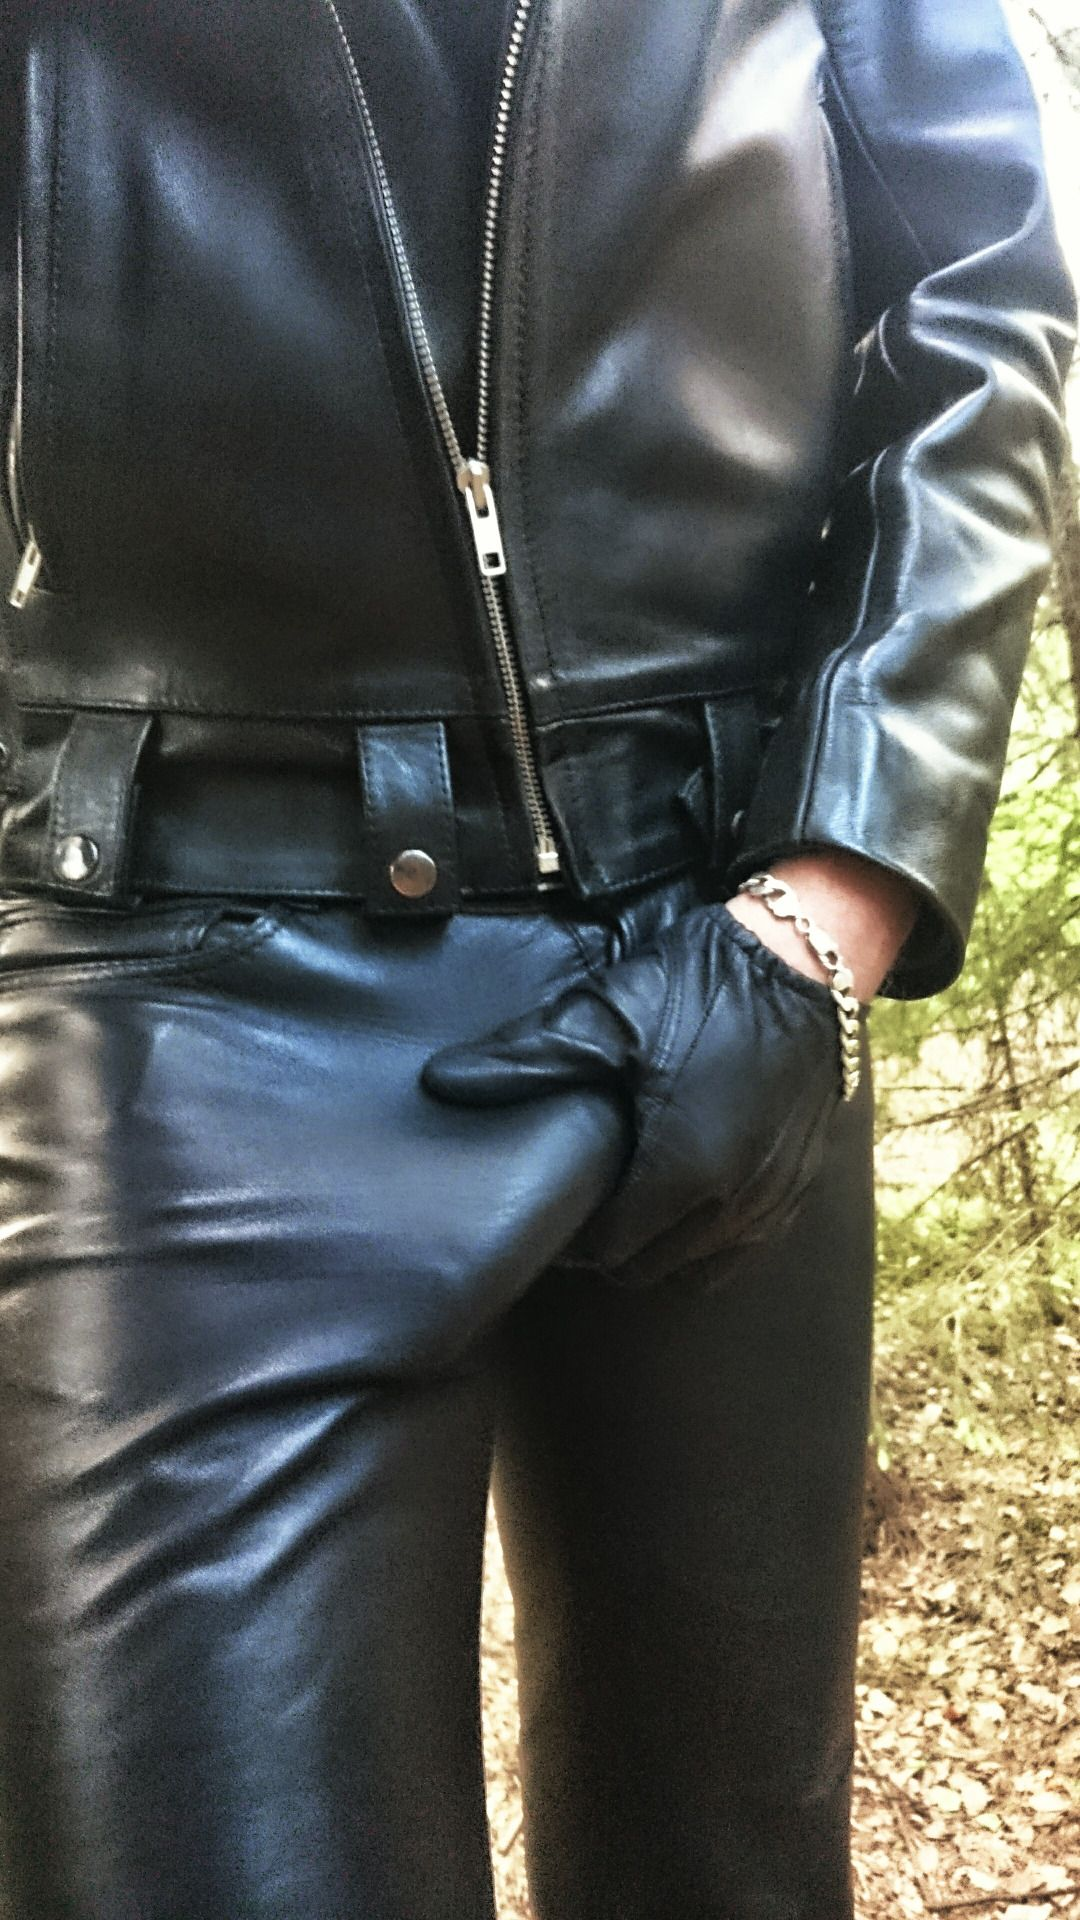 Leather Pants Naked Gay Porn Pics